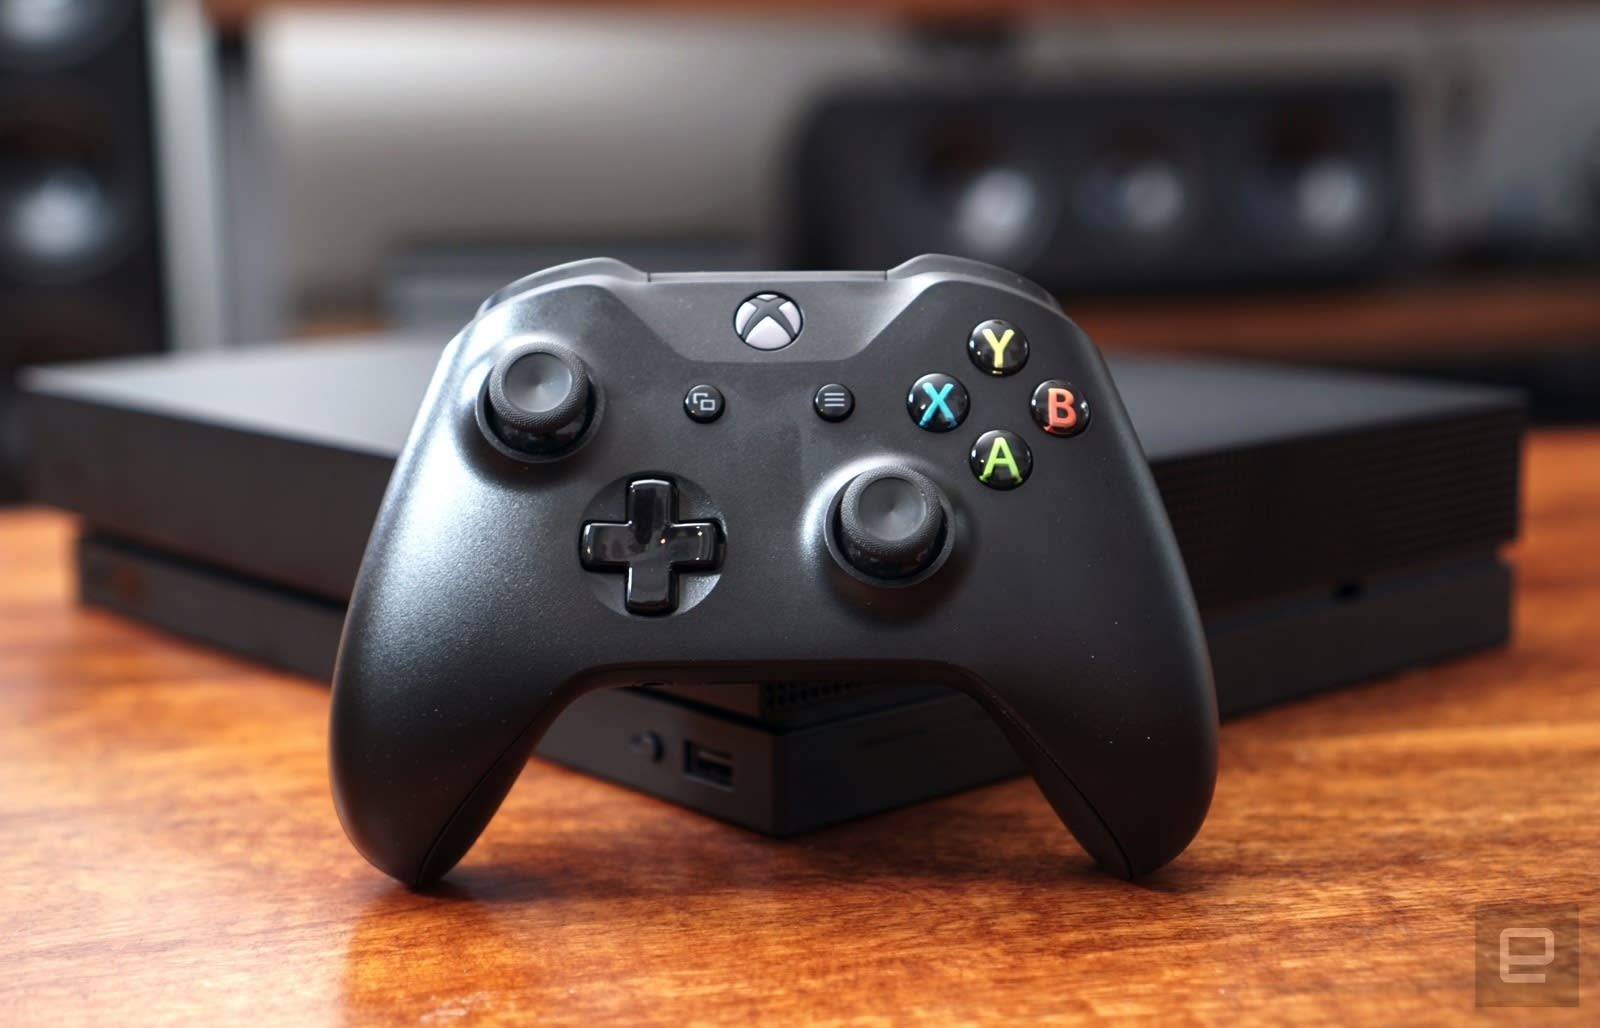 Xbox One 'black screen' issue prevented consoles from starting up